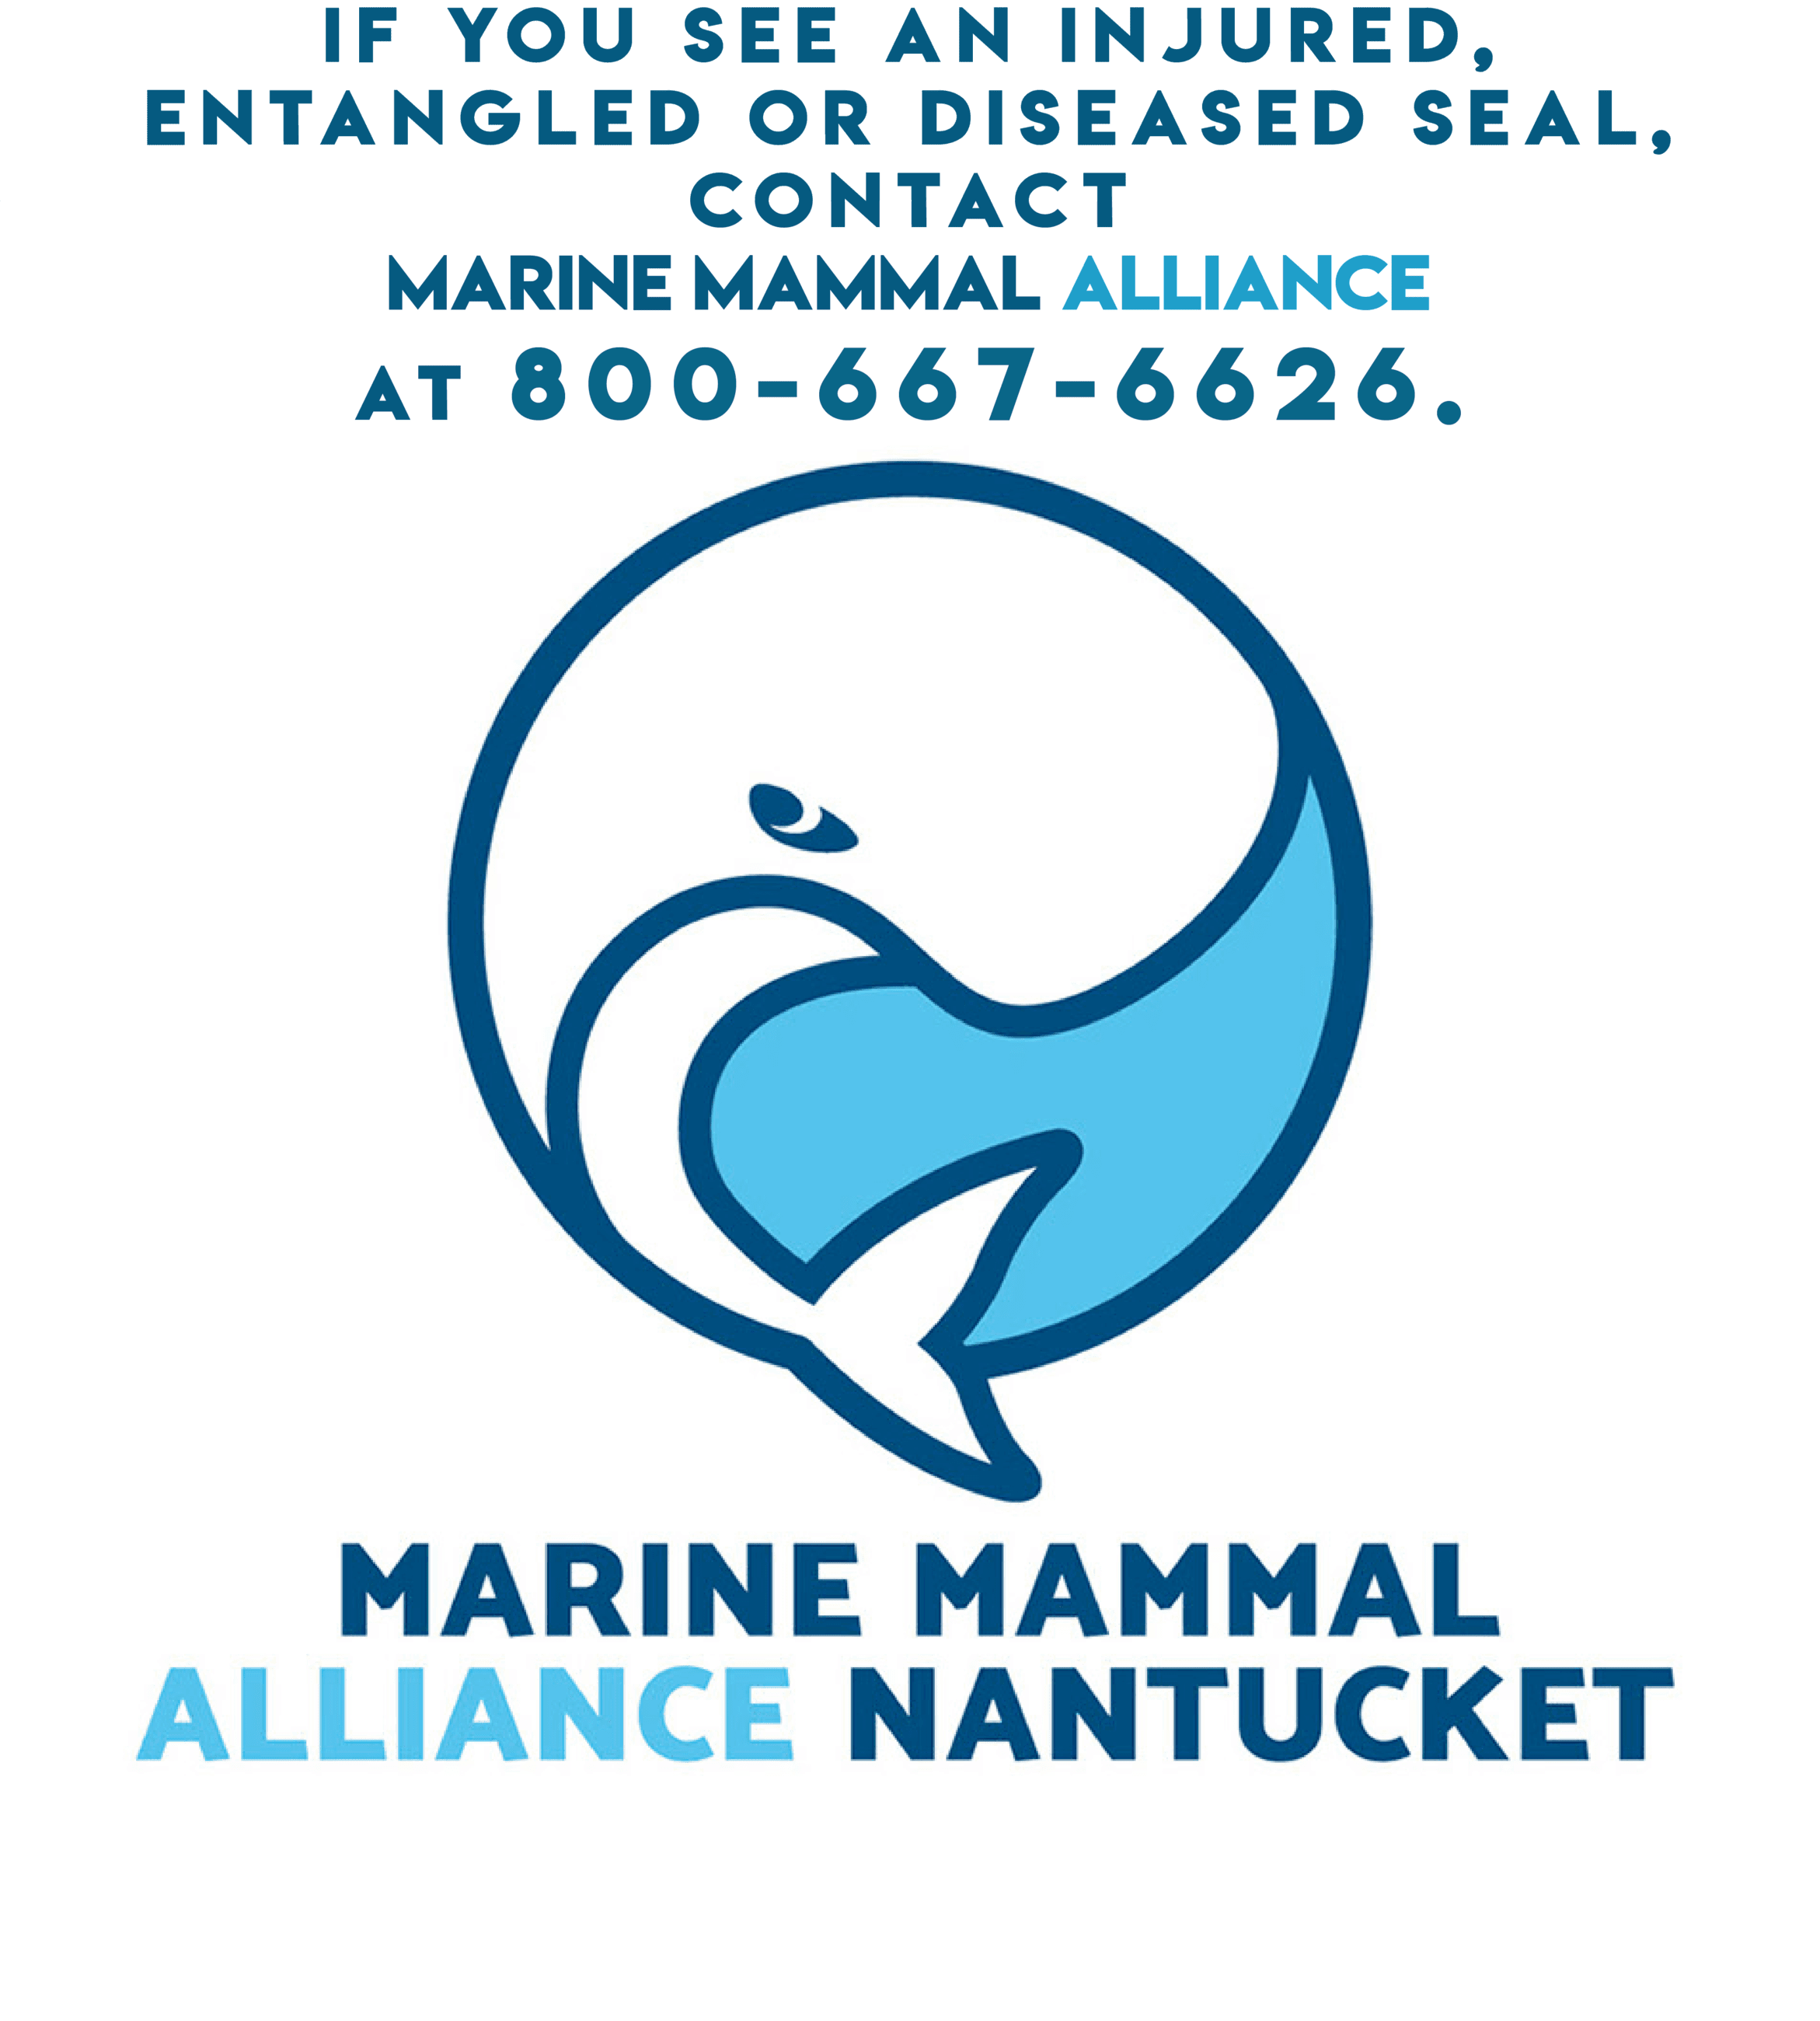 Marine Mammal Alliance Nantucket